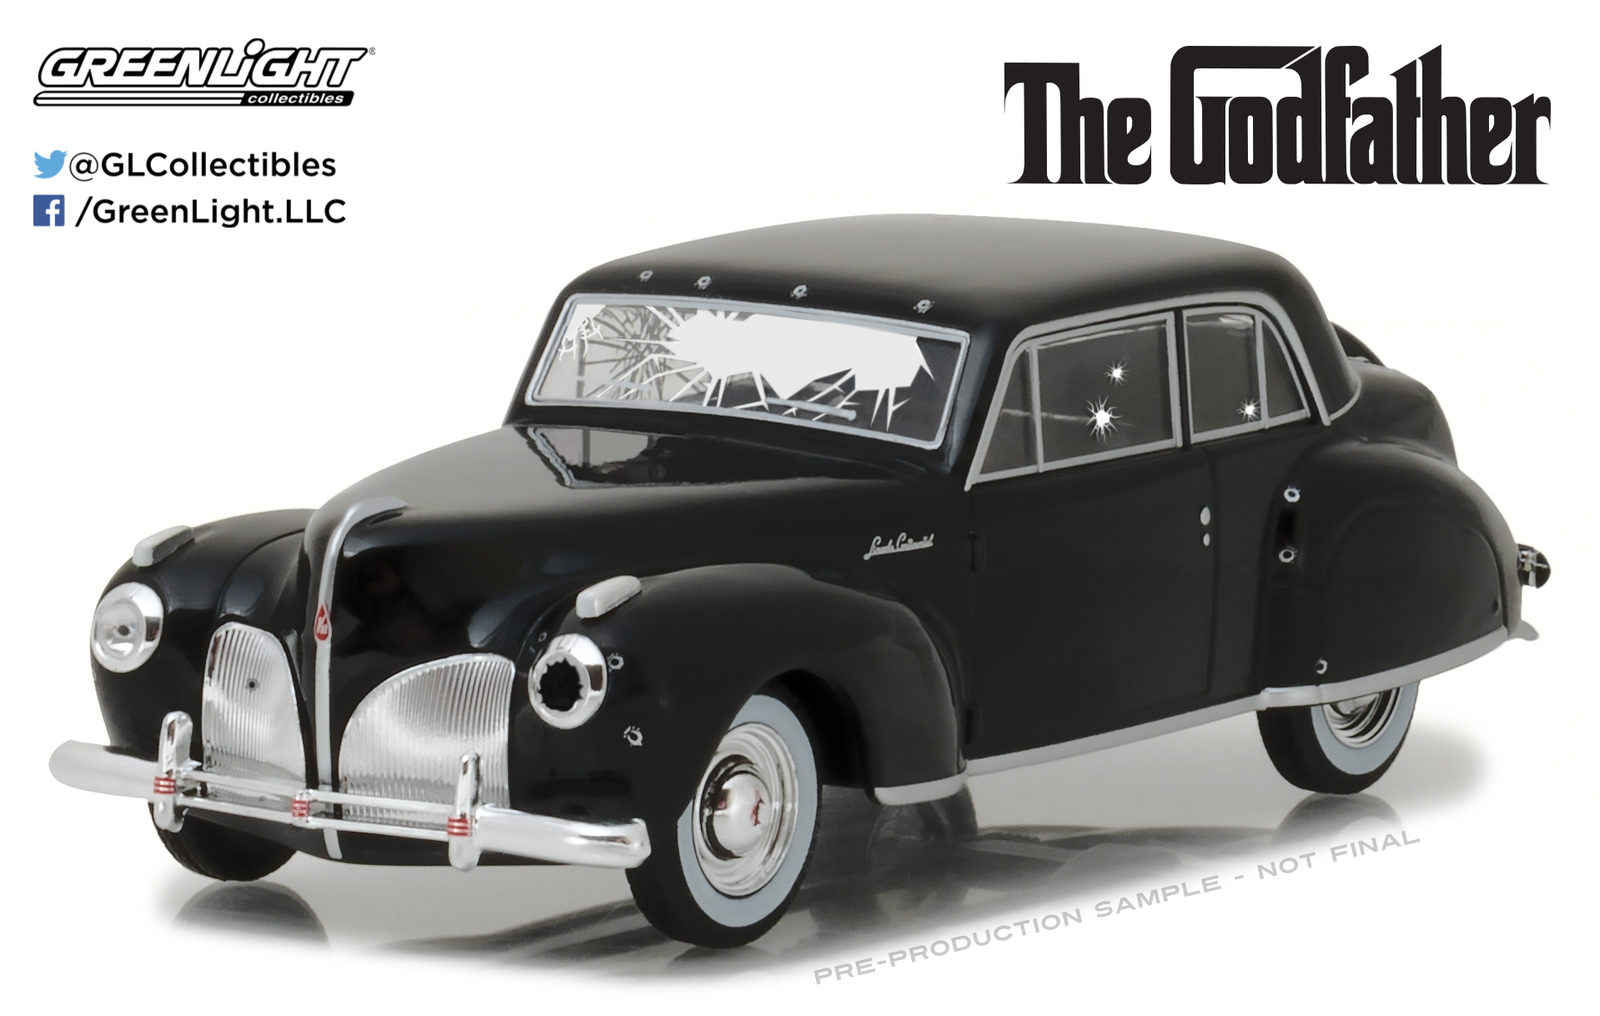 1/43: Lincoln Continental - Bullet Damaged - Diecast Model image